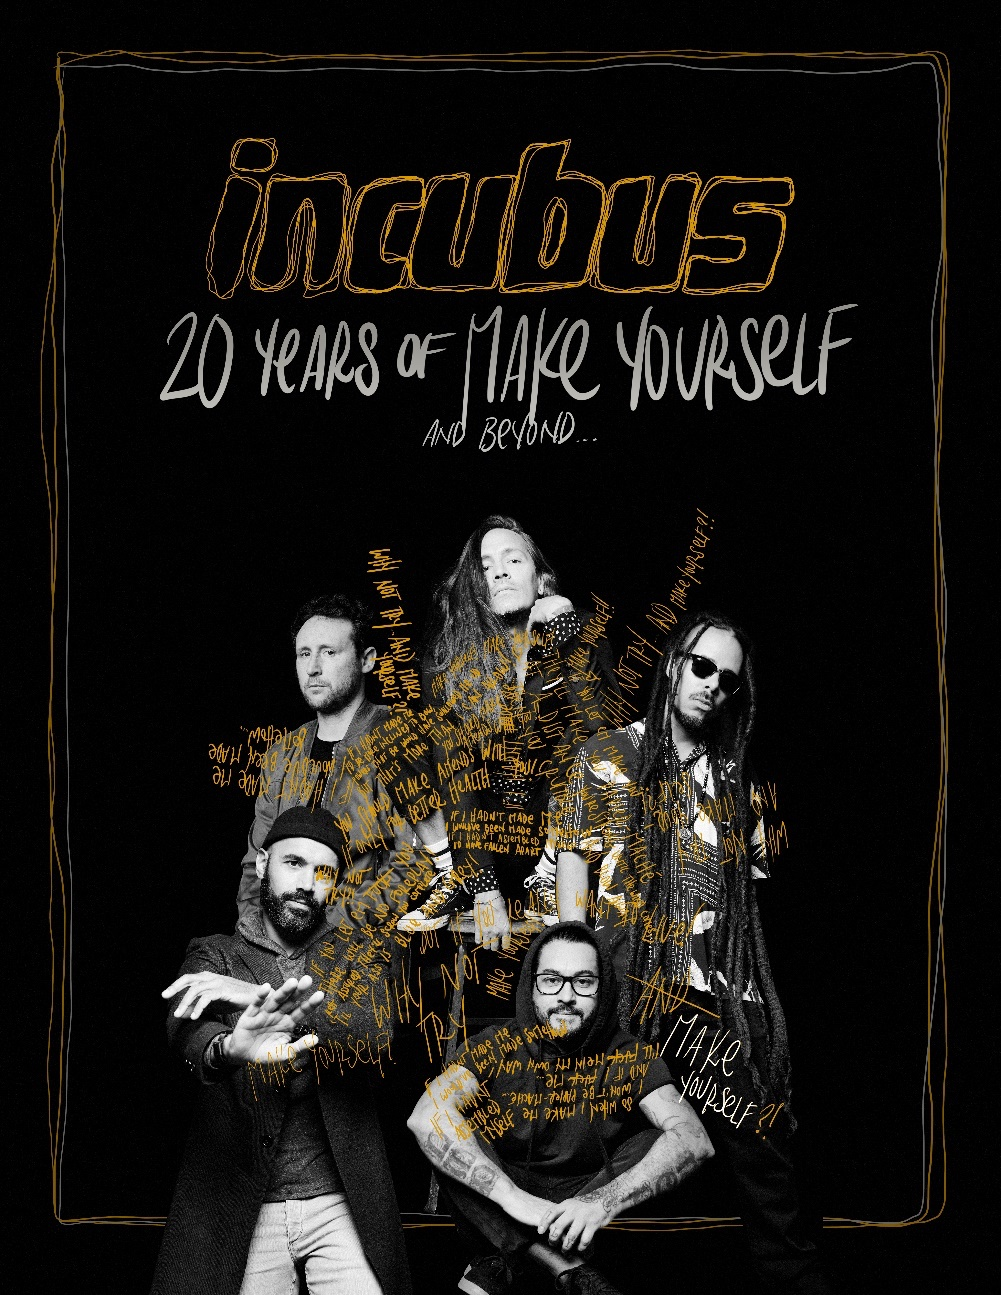 20 Of The Most Beautiful Minimalist Living Spaces: Incubus Announce Make Yourself 20th Anniversary Tour